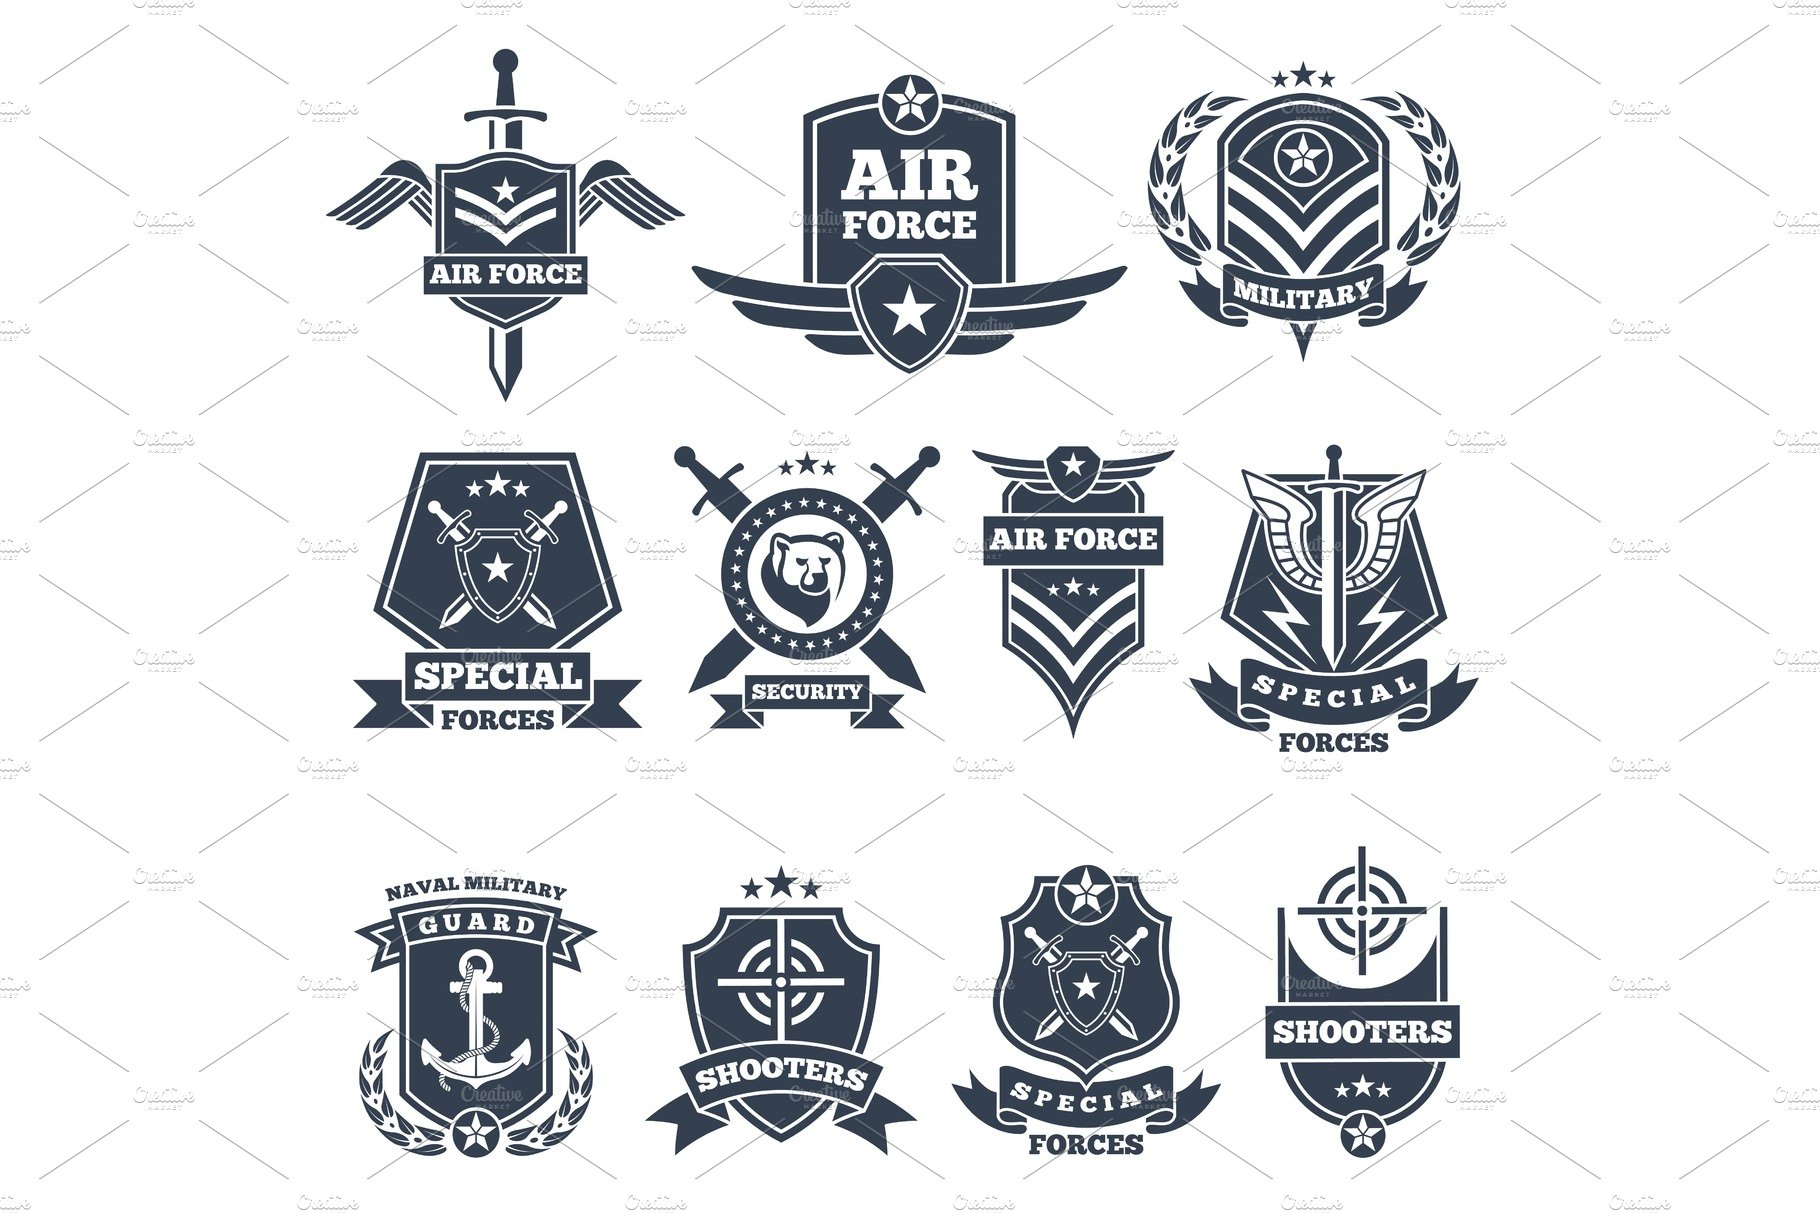 Military Logos And Badges Army Symbols Isolated On White Background